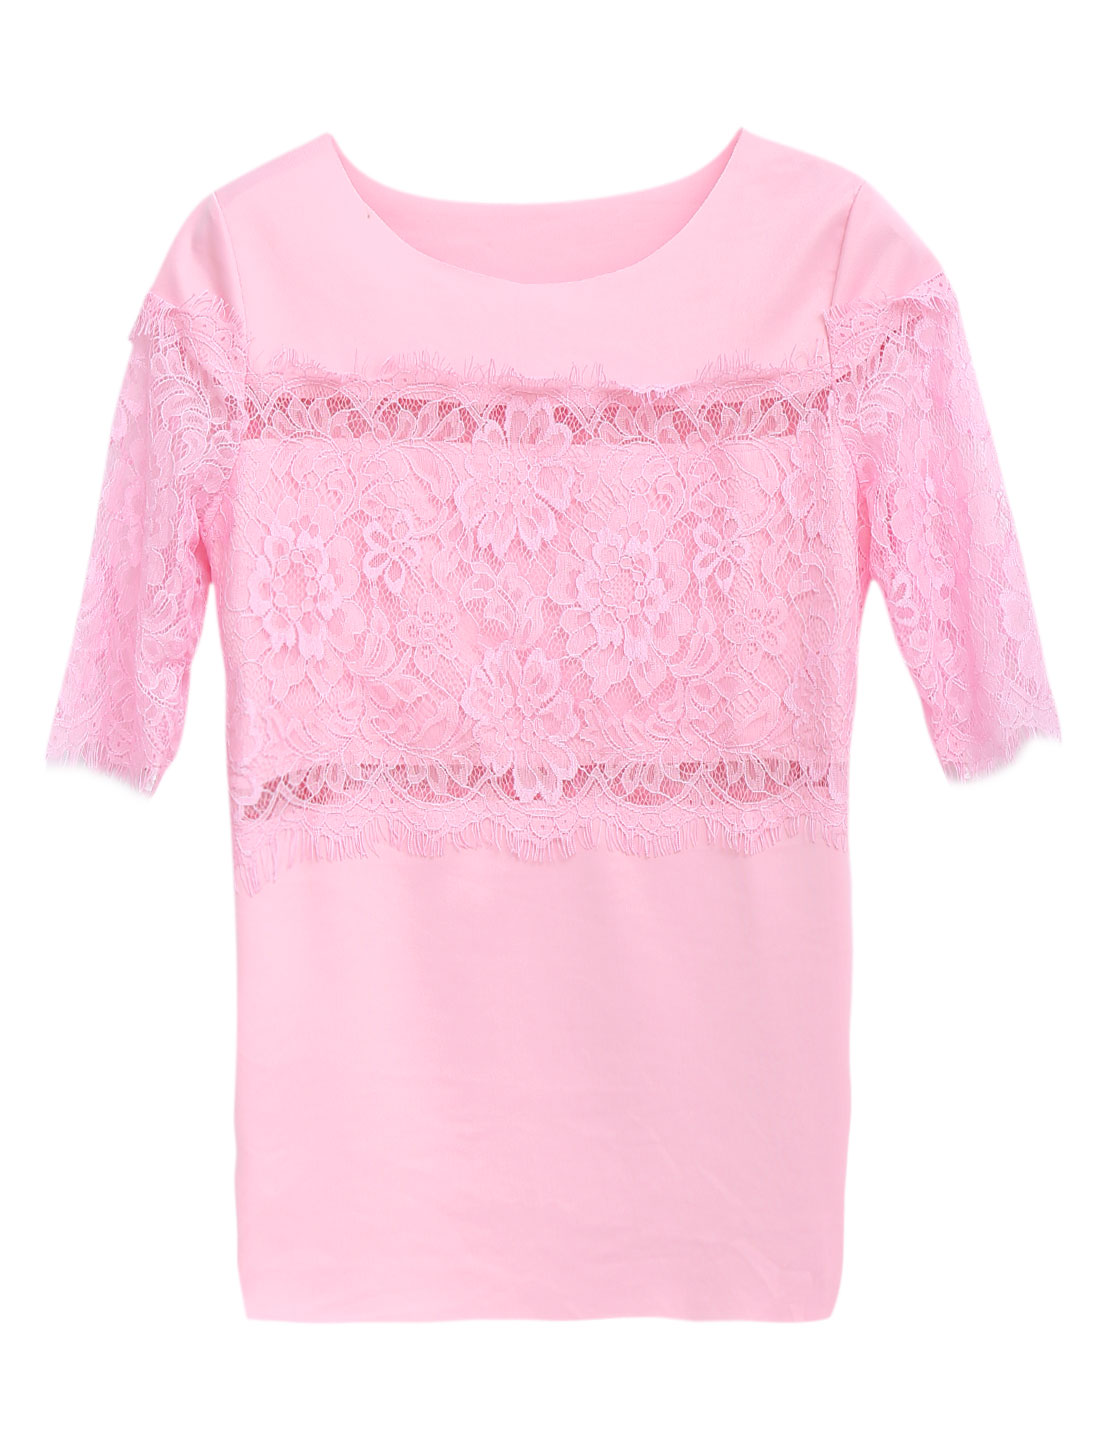 Women Round Neck Eyelash Lace Detail Sweet Chic Blouse Light Pink S